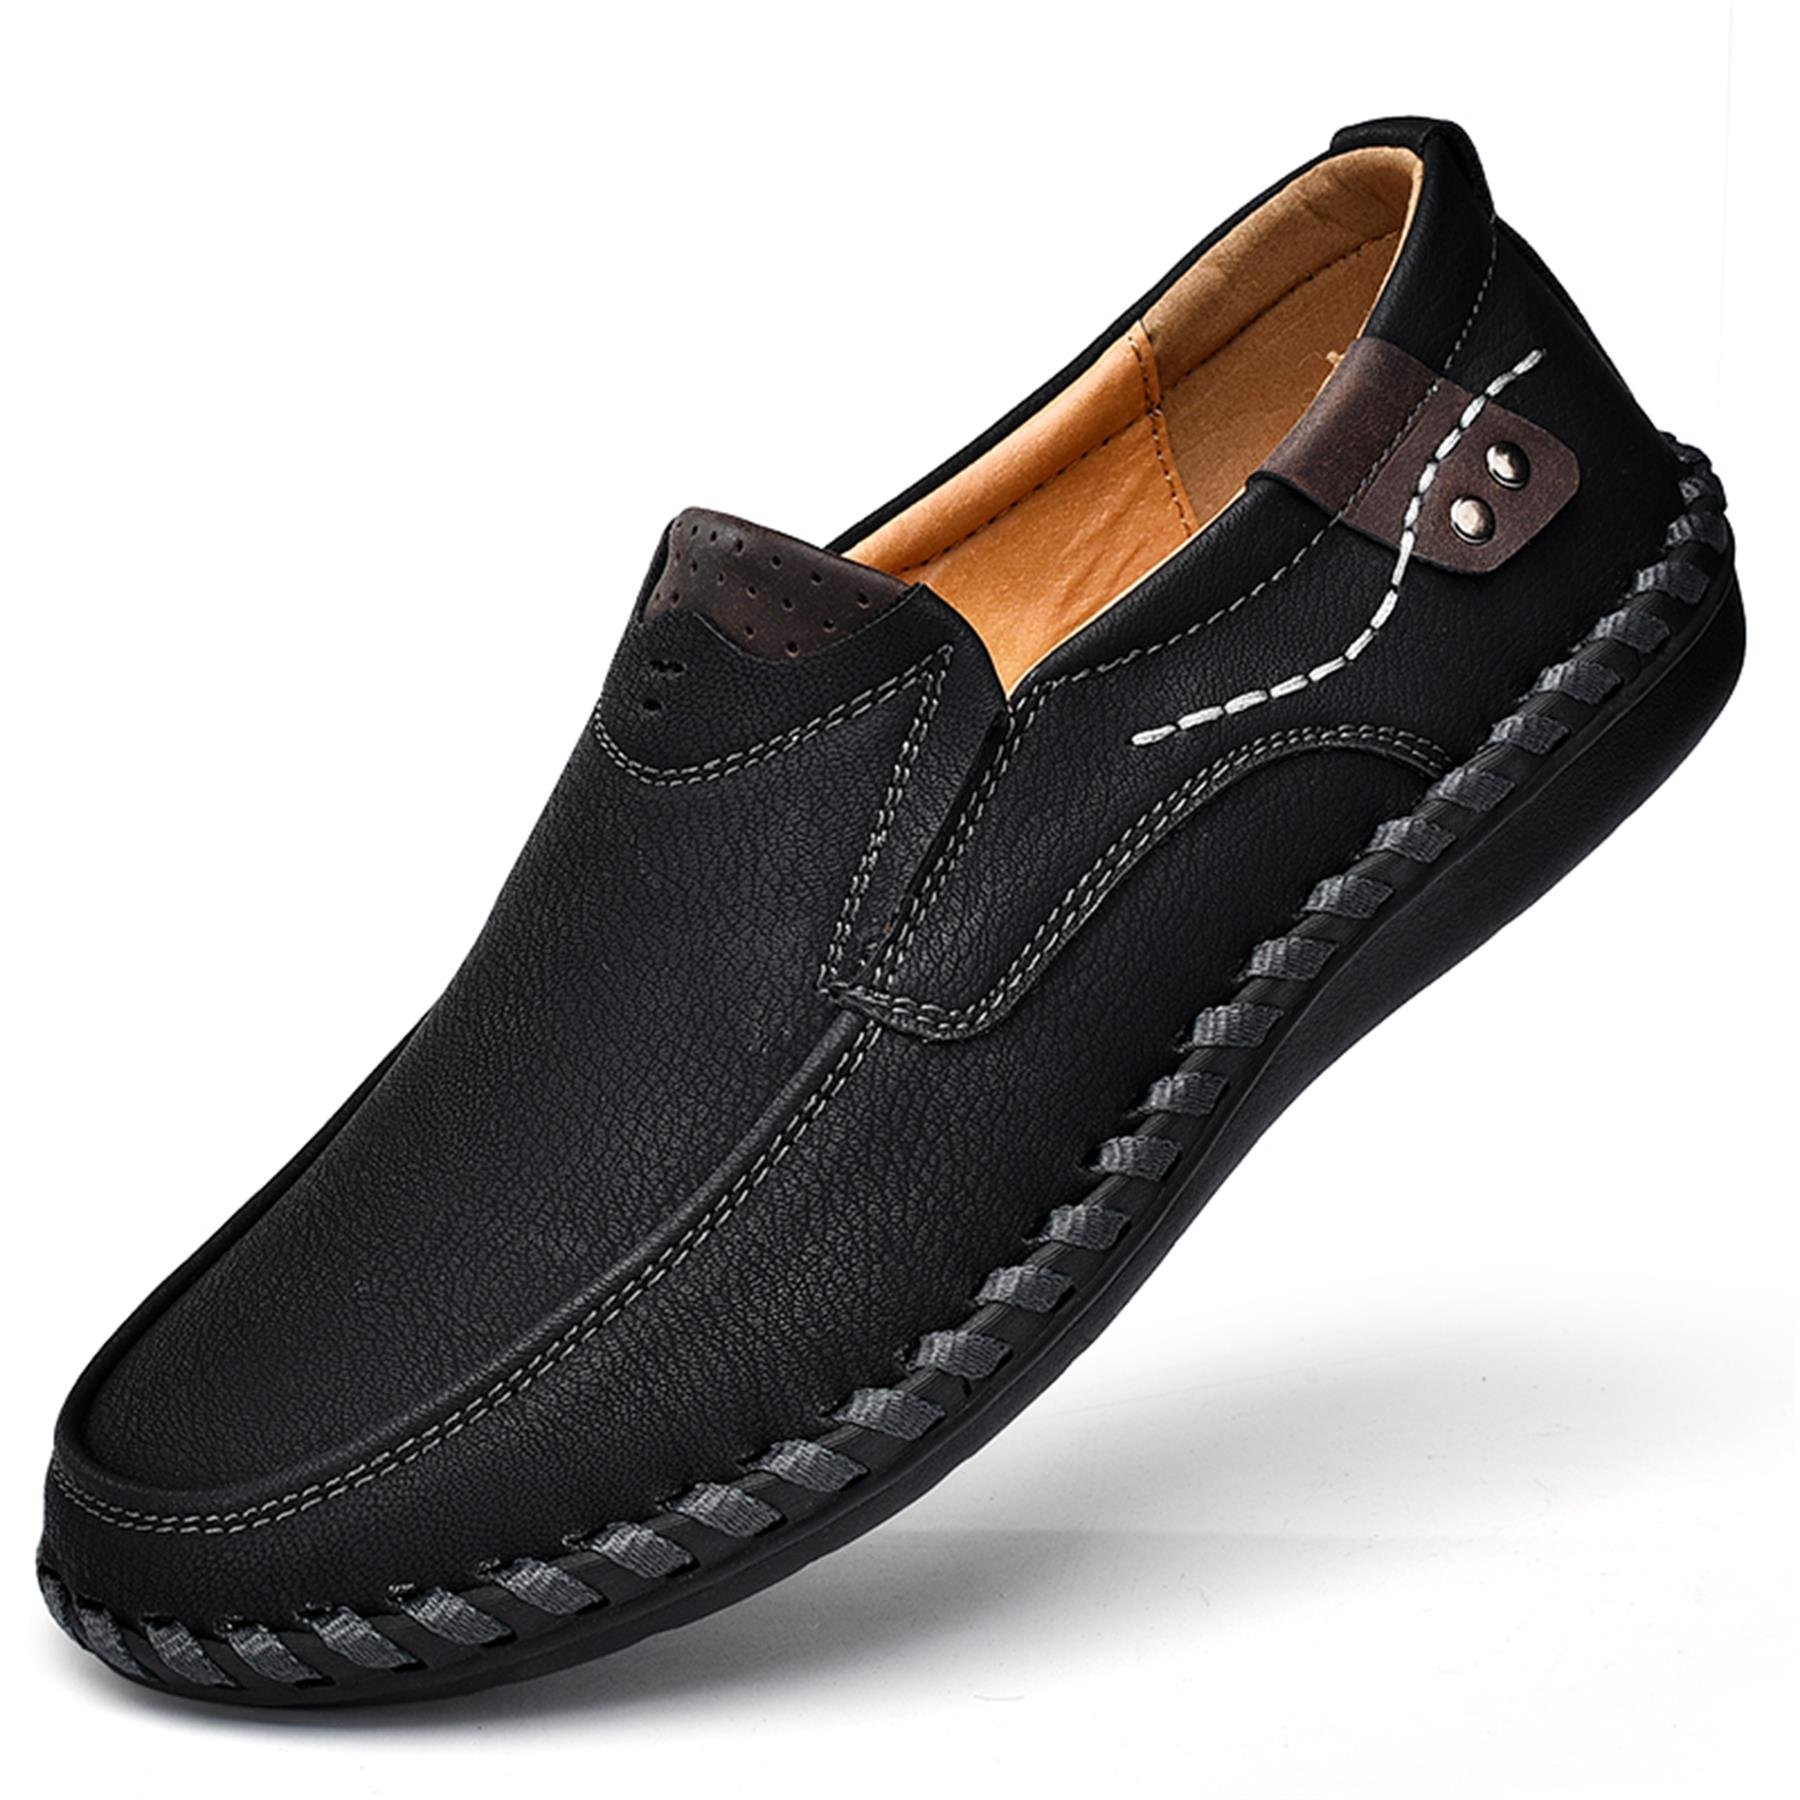 LSGEGO Men's Loafers Boat Shoes Casual Office Indoor Breathable Lightweight Walking Trainer